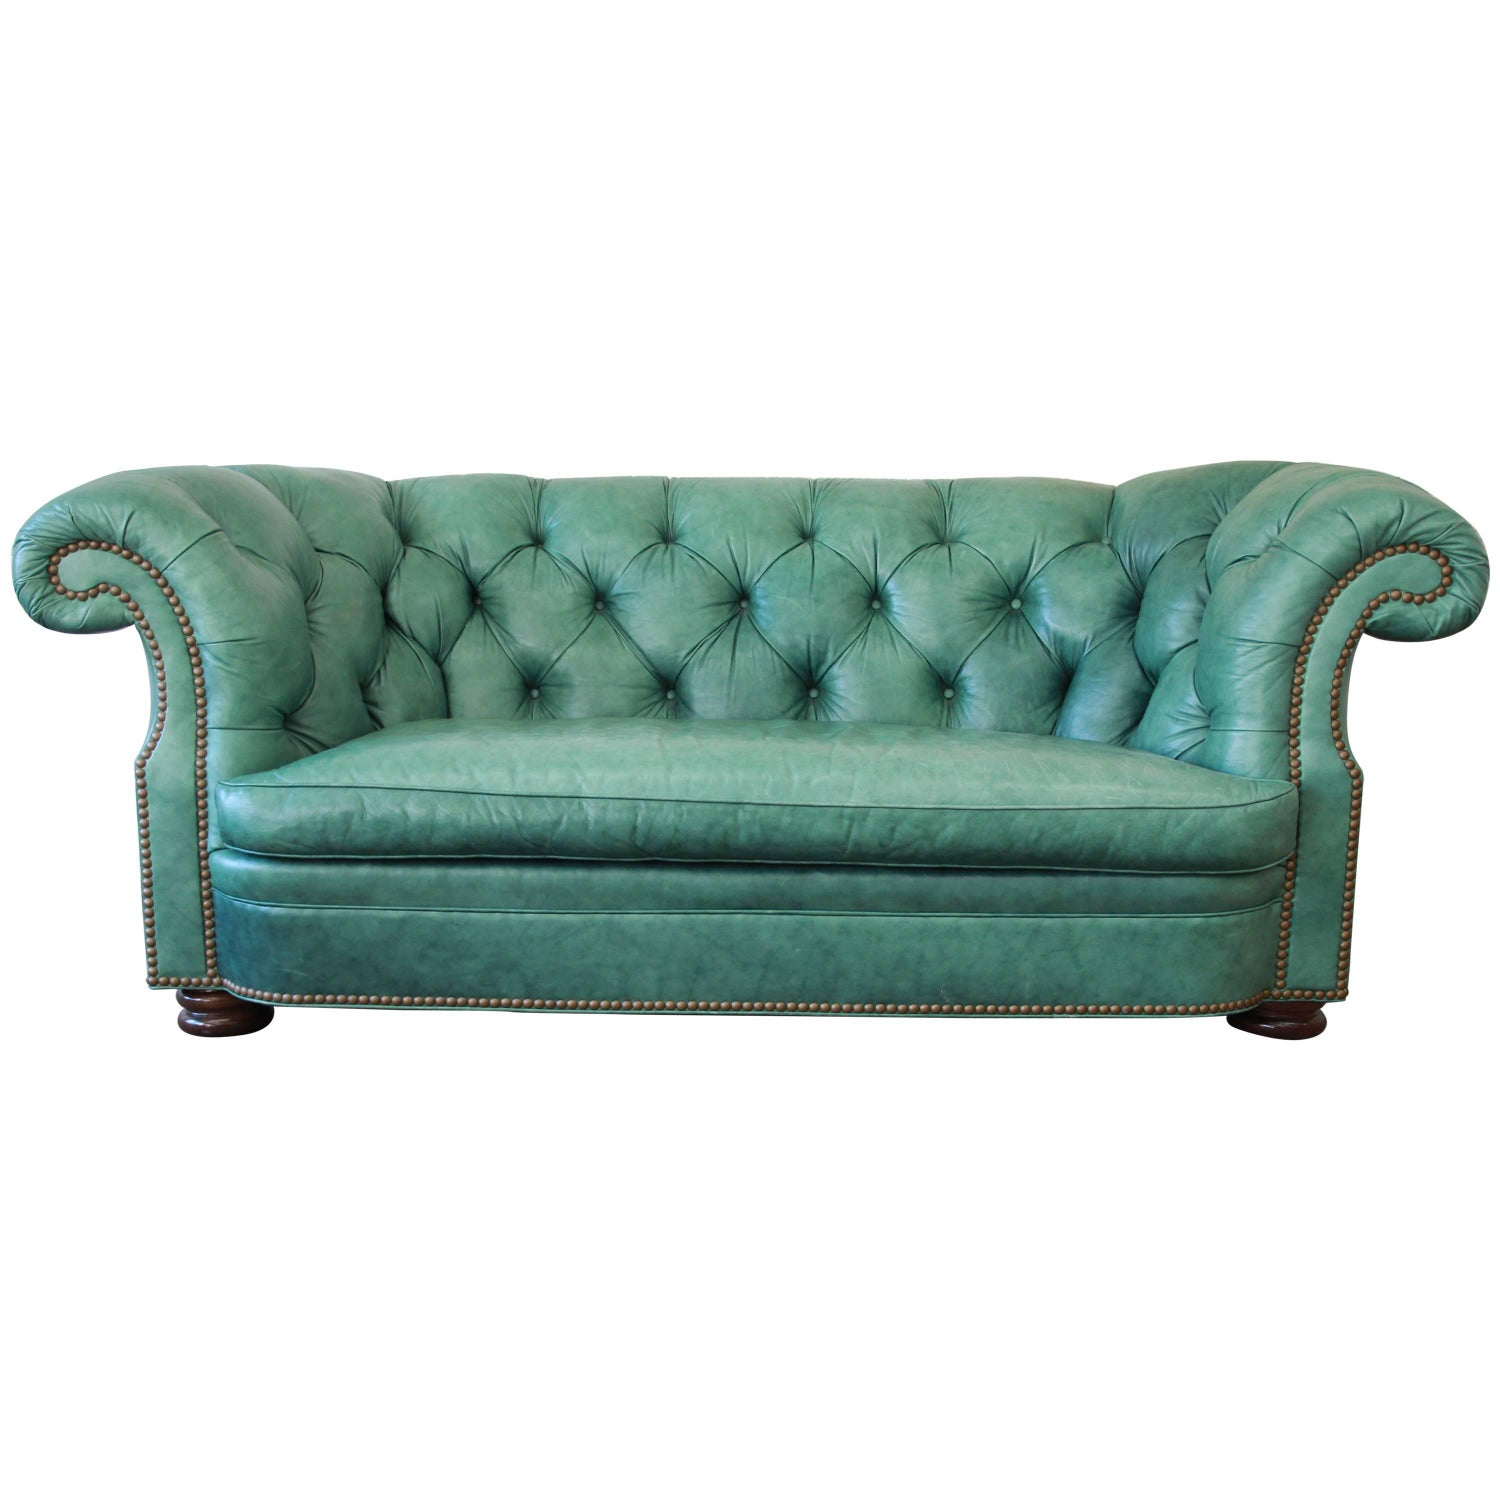 Chesterfield Sofas 79 For Sale at 1stdibs